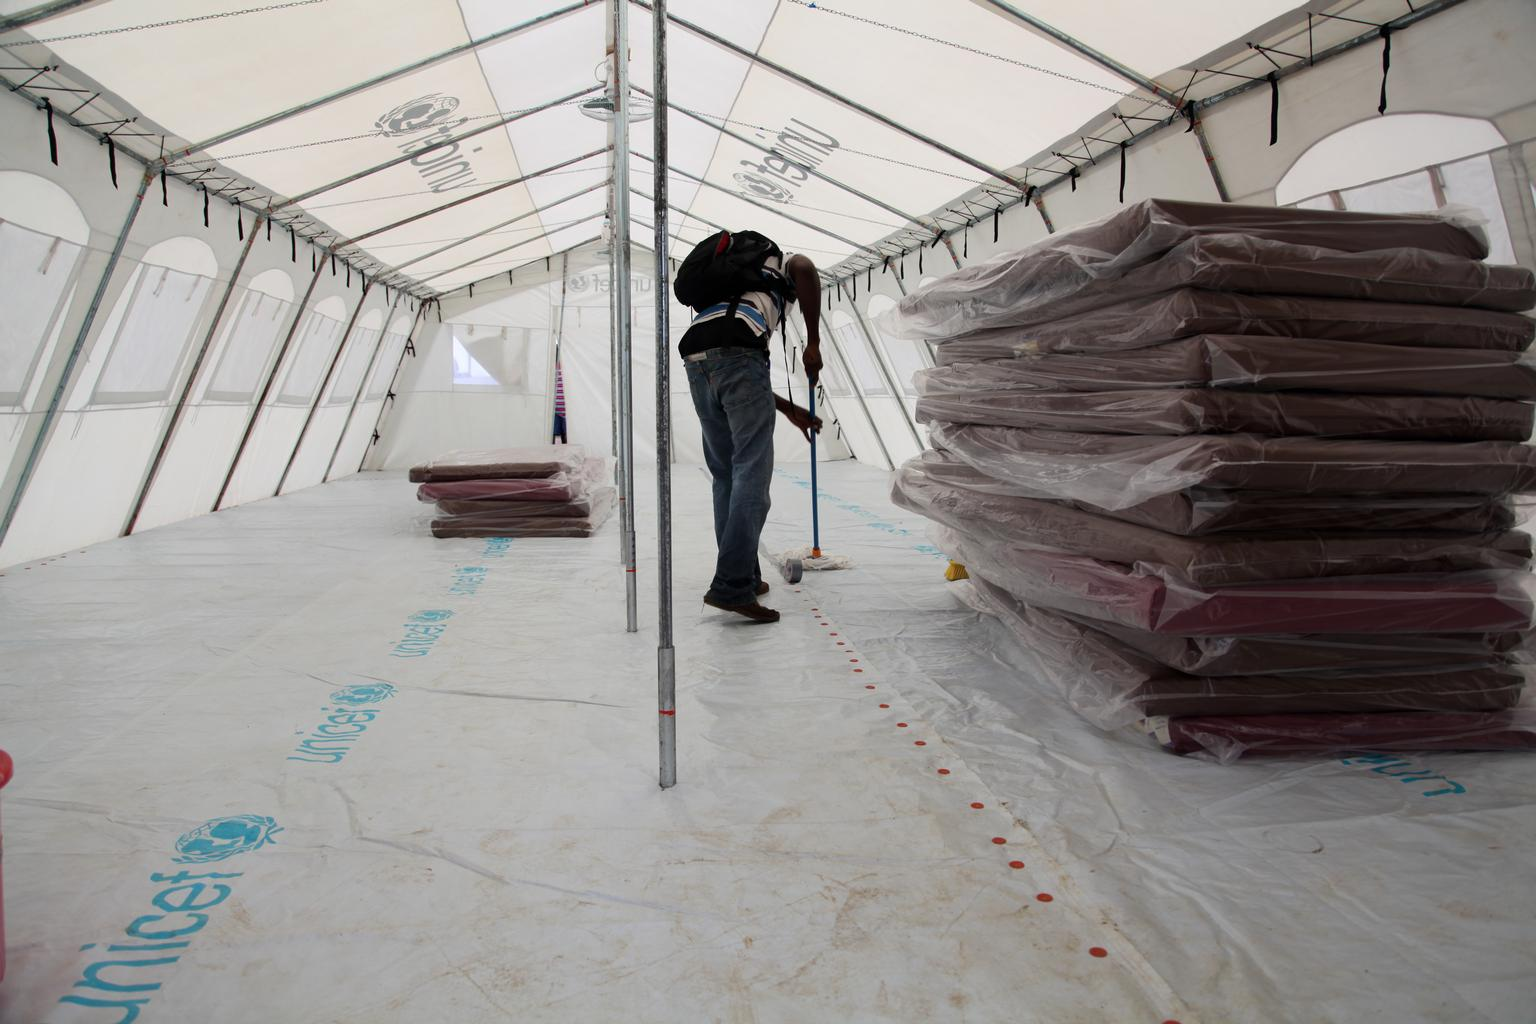 A worker cleans a newly built UNICEF tent at an expanded Ebola treatment center on the outskirts of Monrovia, Liberia. © UNICEF/NYHQ2014-1257/Jallanzo .